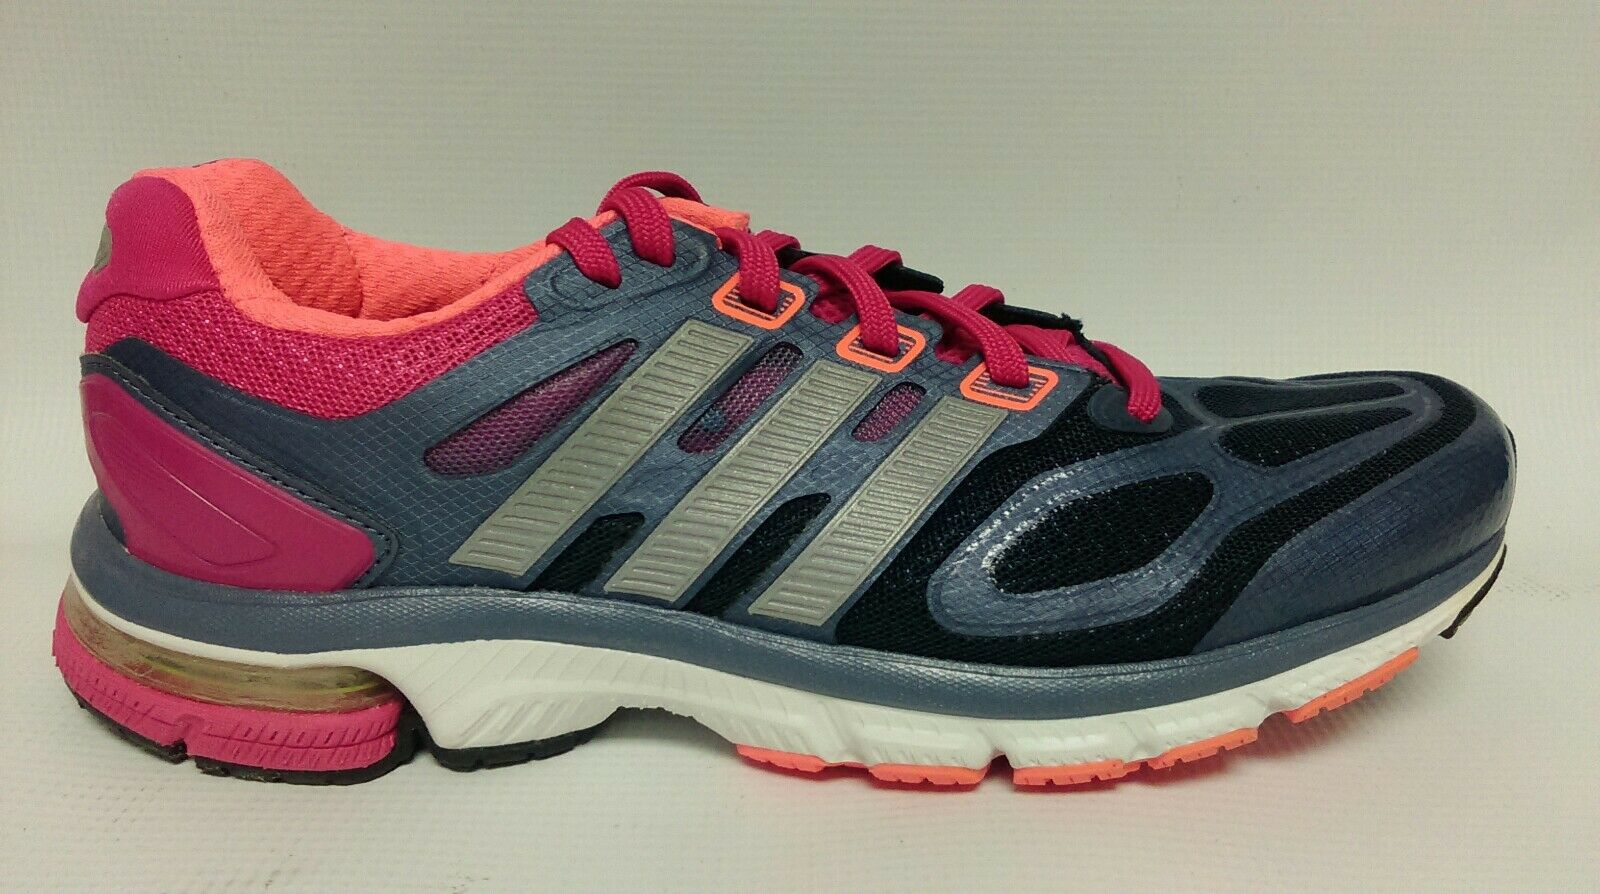 New Womens adidas Supernova Sequence 6 Running Shoes US Womens Size 6 B